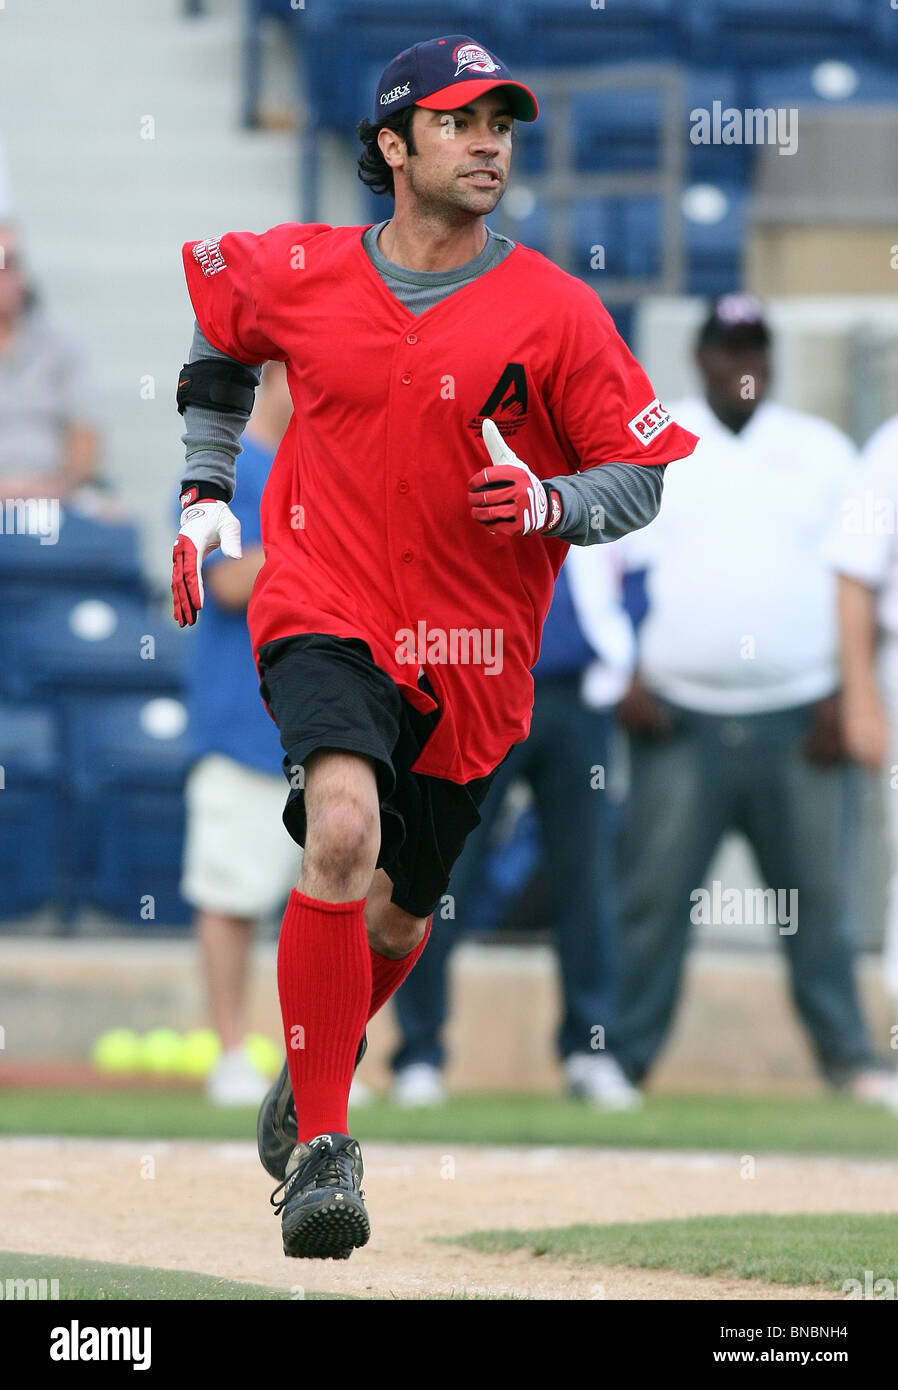 DANNY PINO THE STEVE GARVEY'S CELEBRITY SOFTBALL CLASSIC MALIBU CA 10 July 2010 - Stock Image